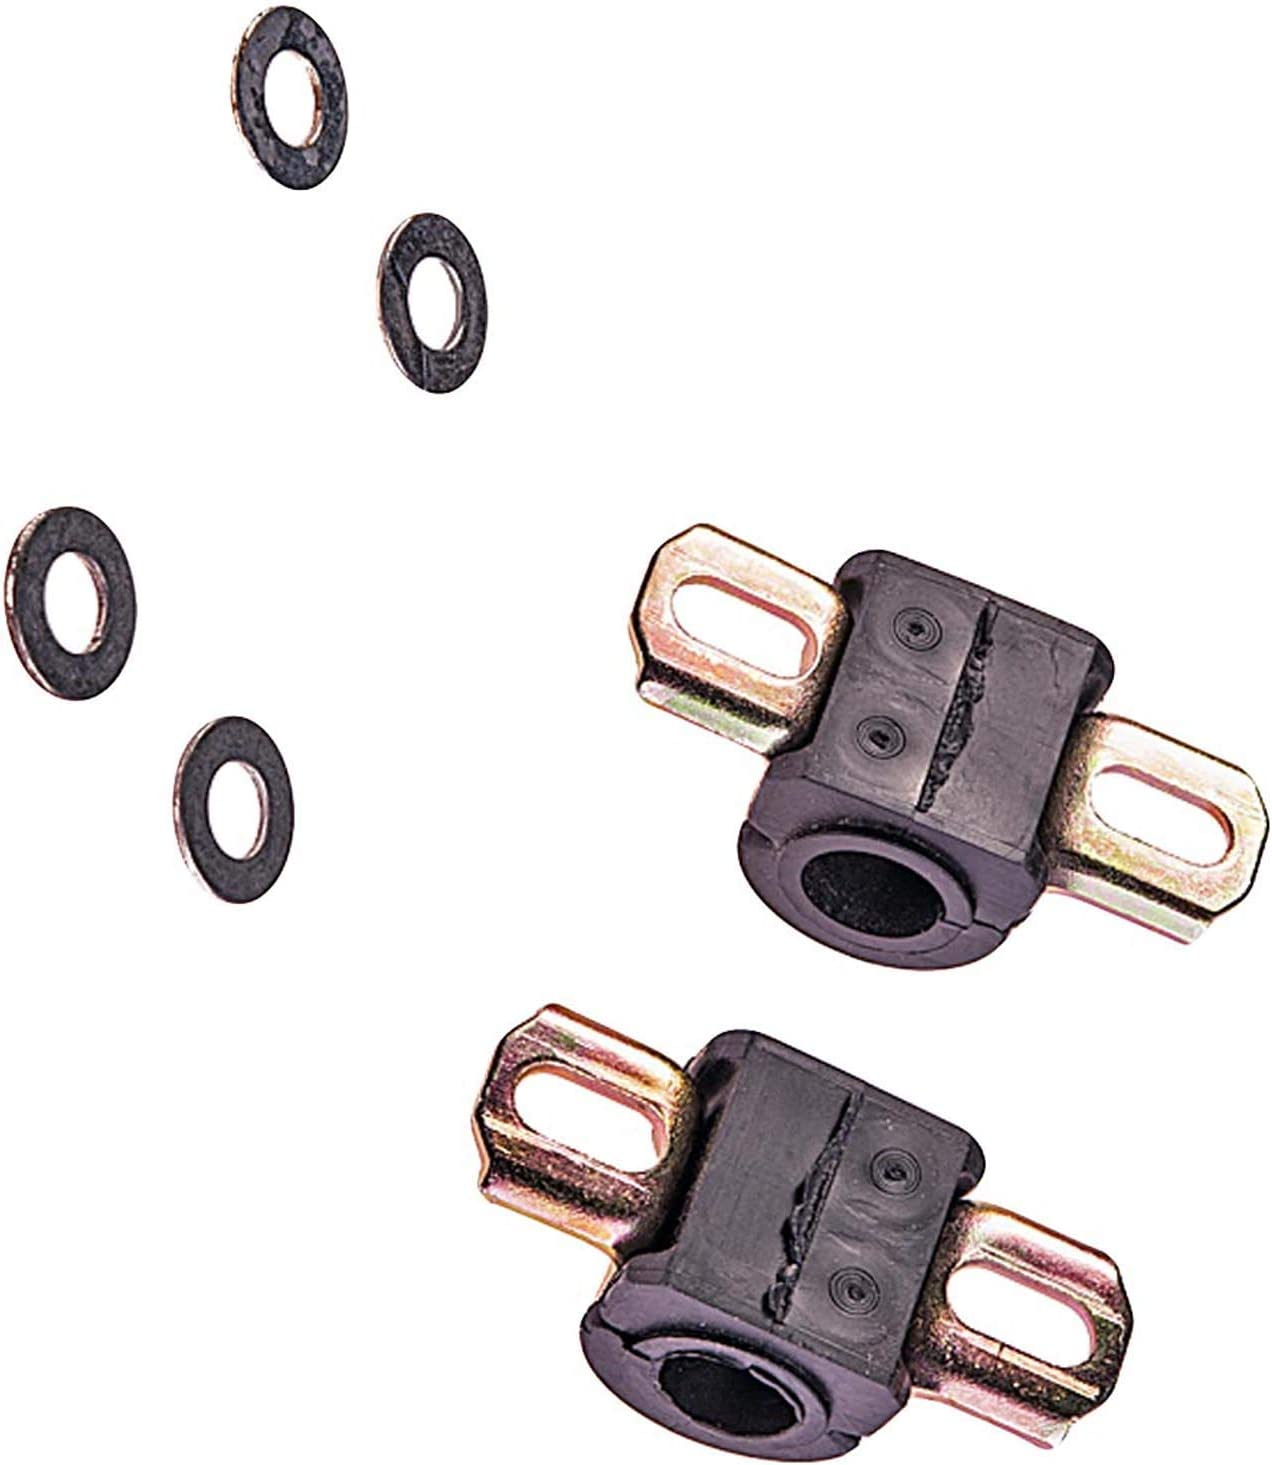 APDTY 147238 Front Support Bushing